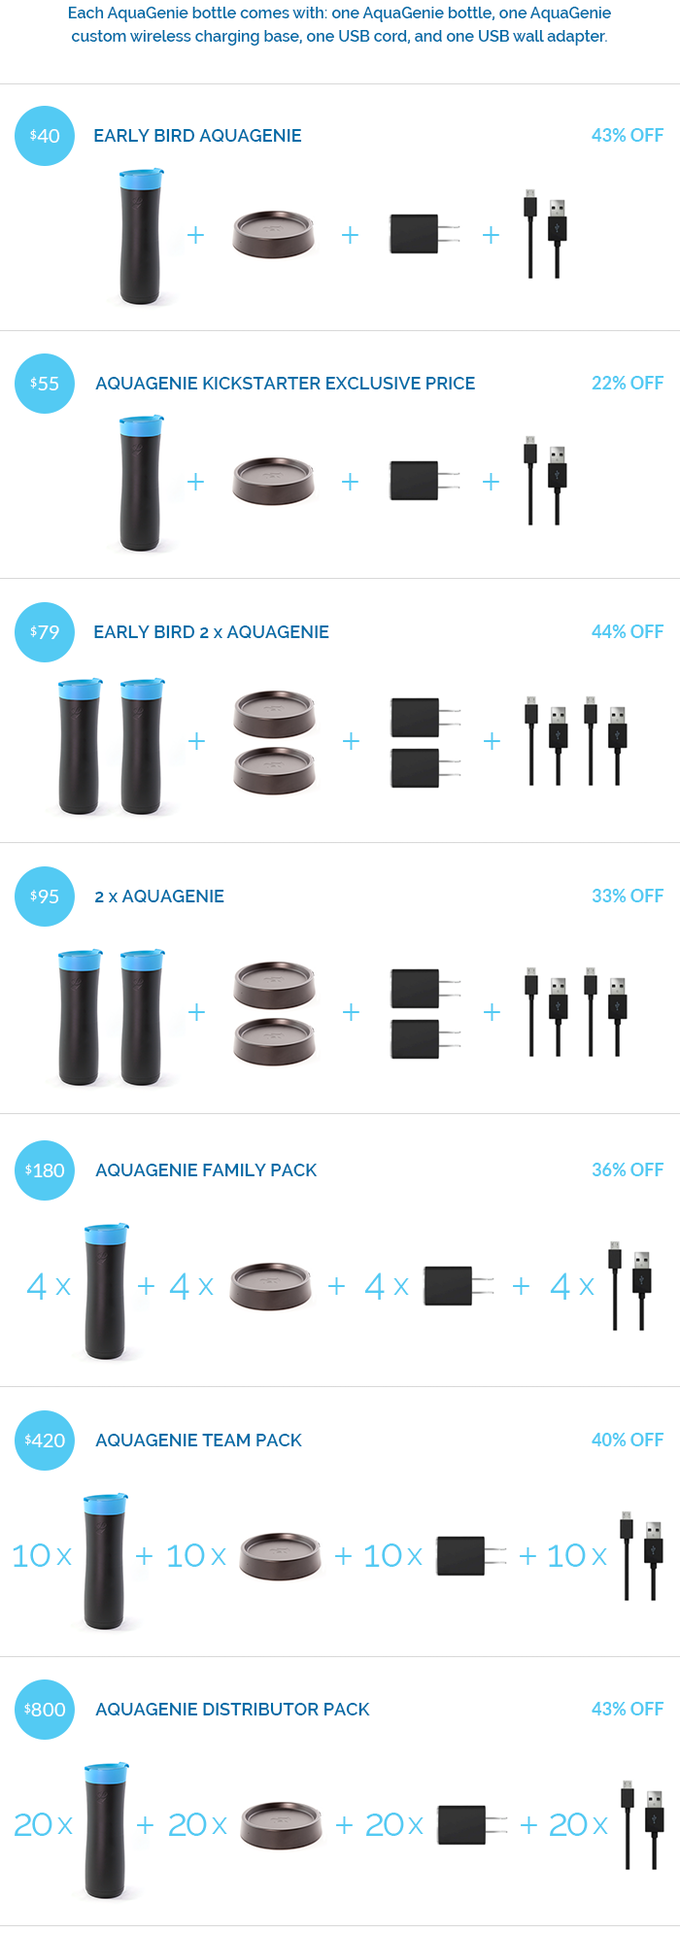 Aquagenie The Worlds Smartest Water Bottle By Kickstarter Garmin 696 Wiring Diagram Once Circuit Boards Were Fitted To And Printed Components Placed Onto Board Firmware Was Written Make It All Work